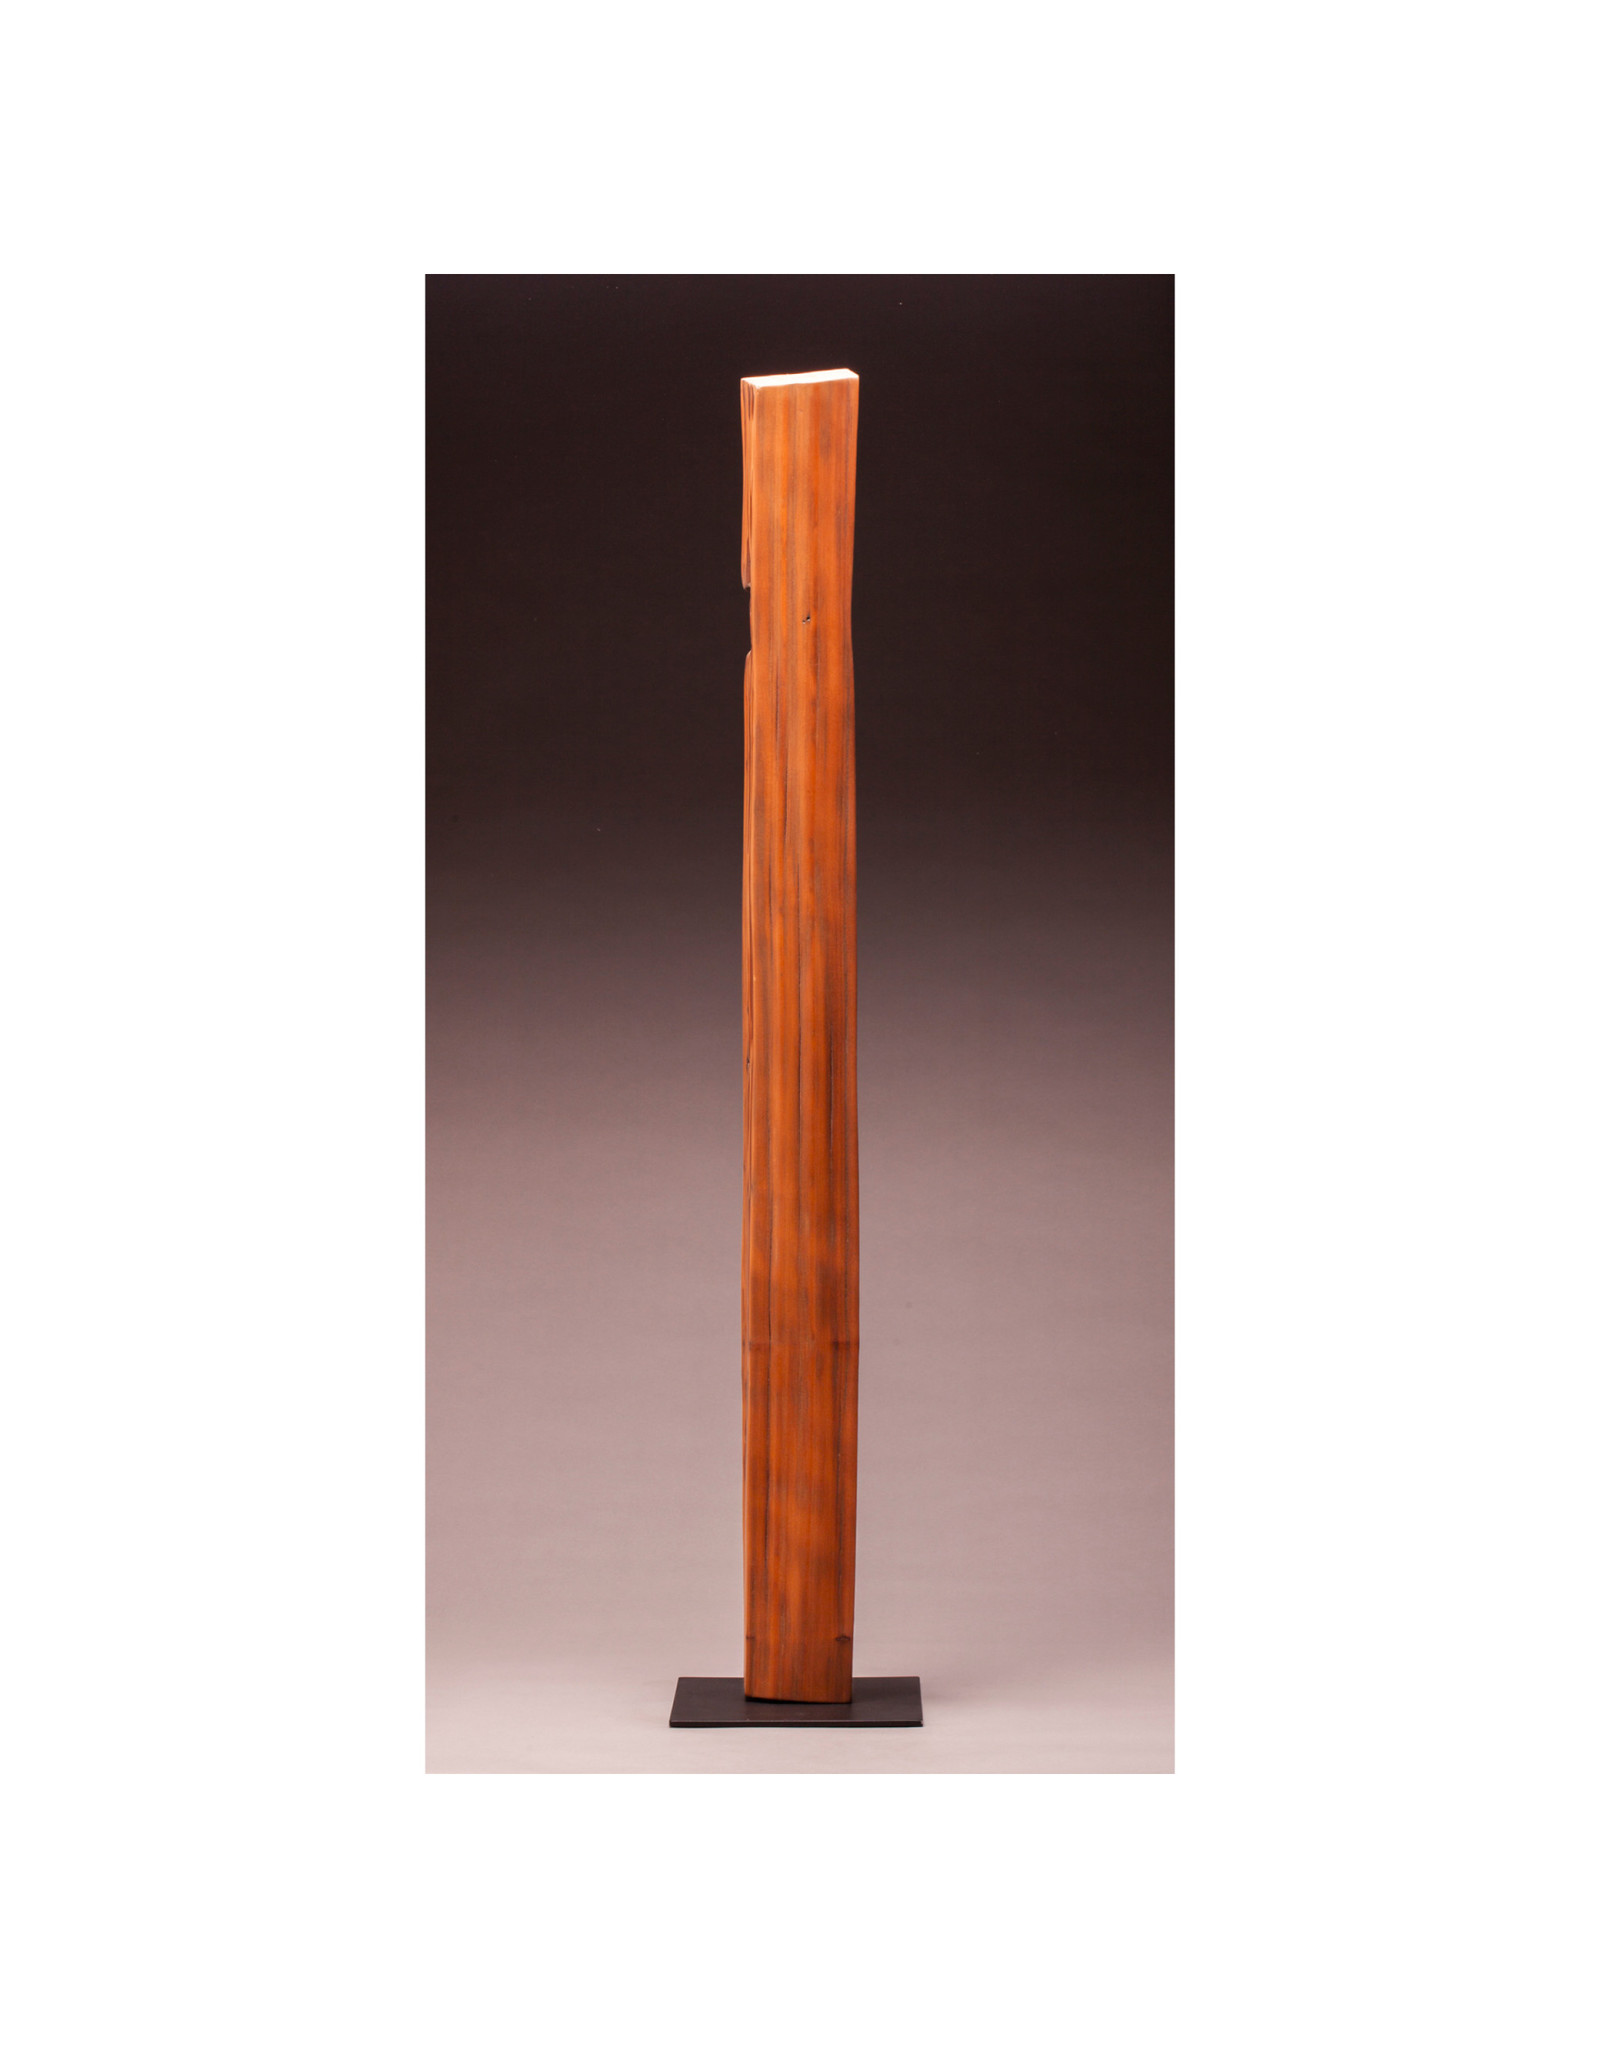 Ceremonial Redwood - No. 6